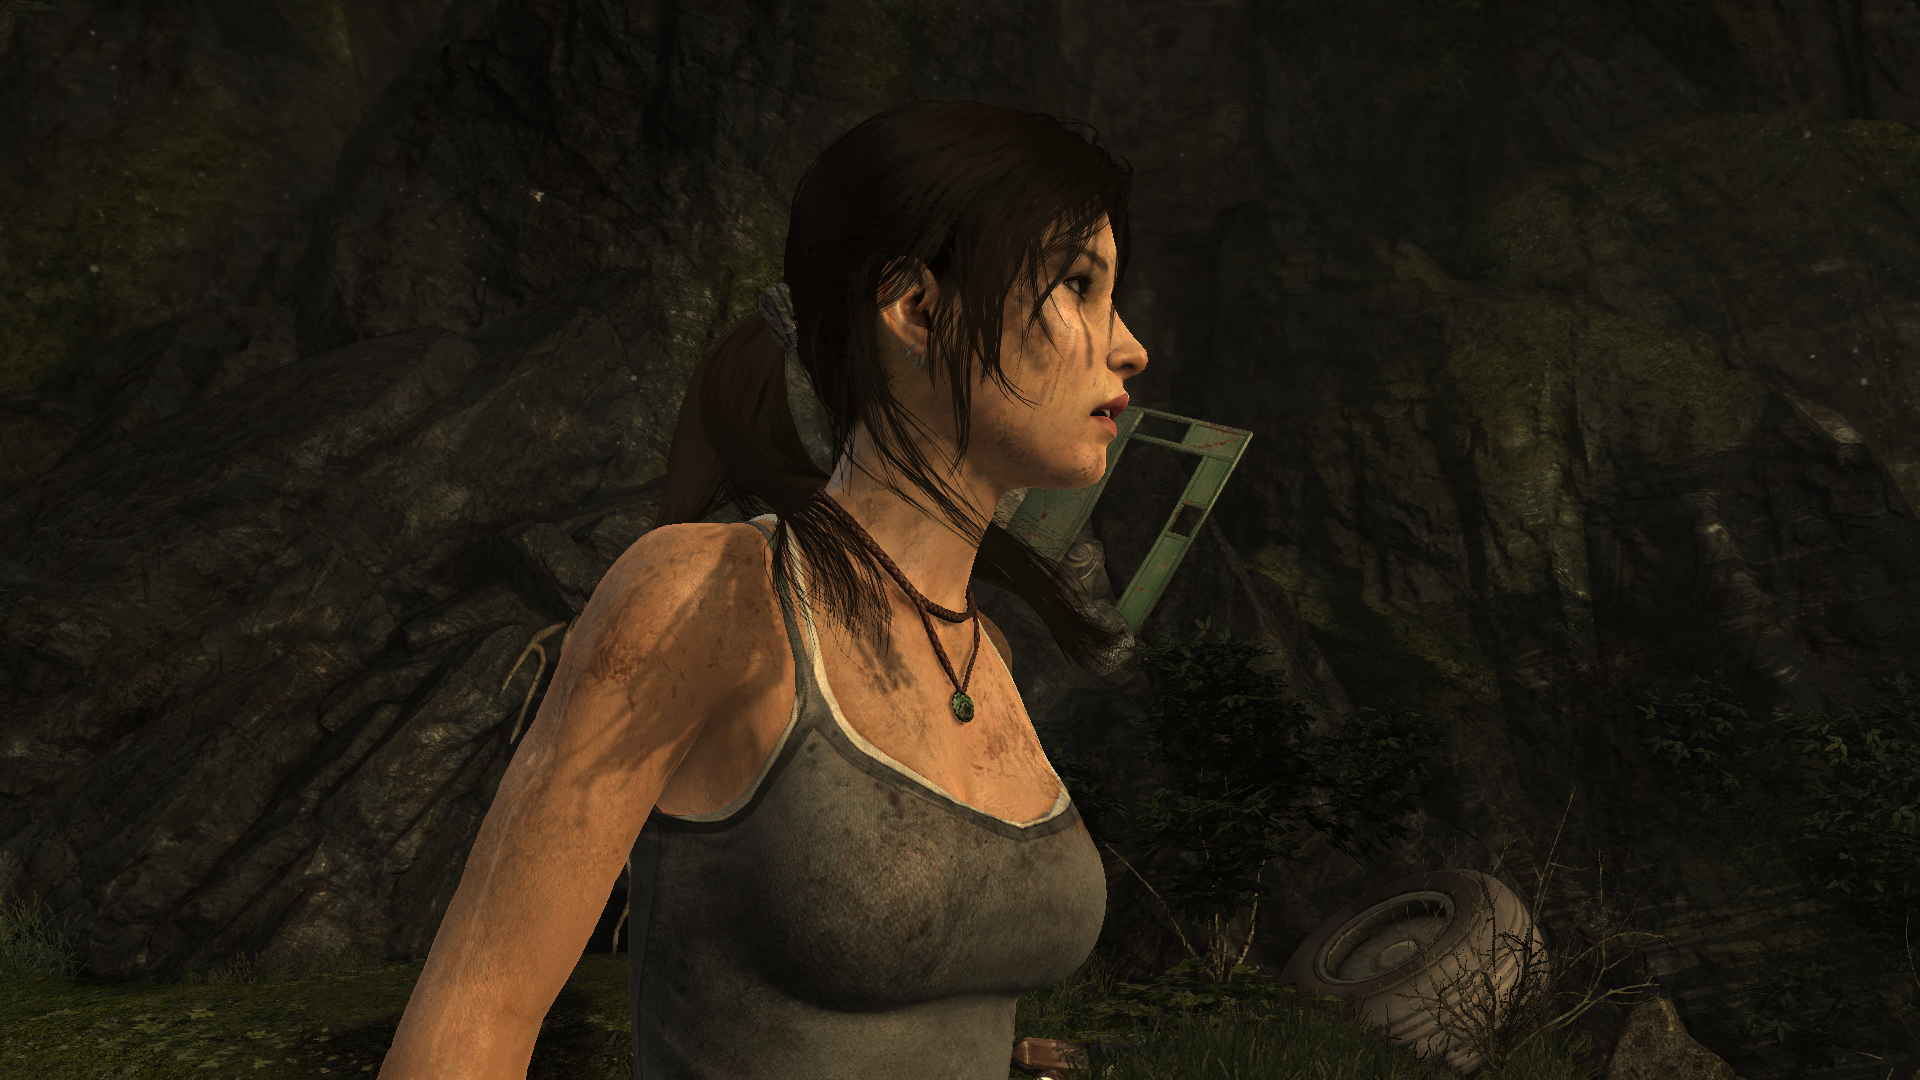 Tomb raider 9 2013 nude patch sex pictures